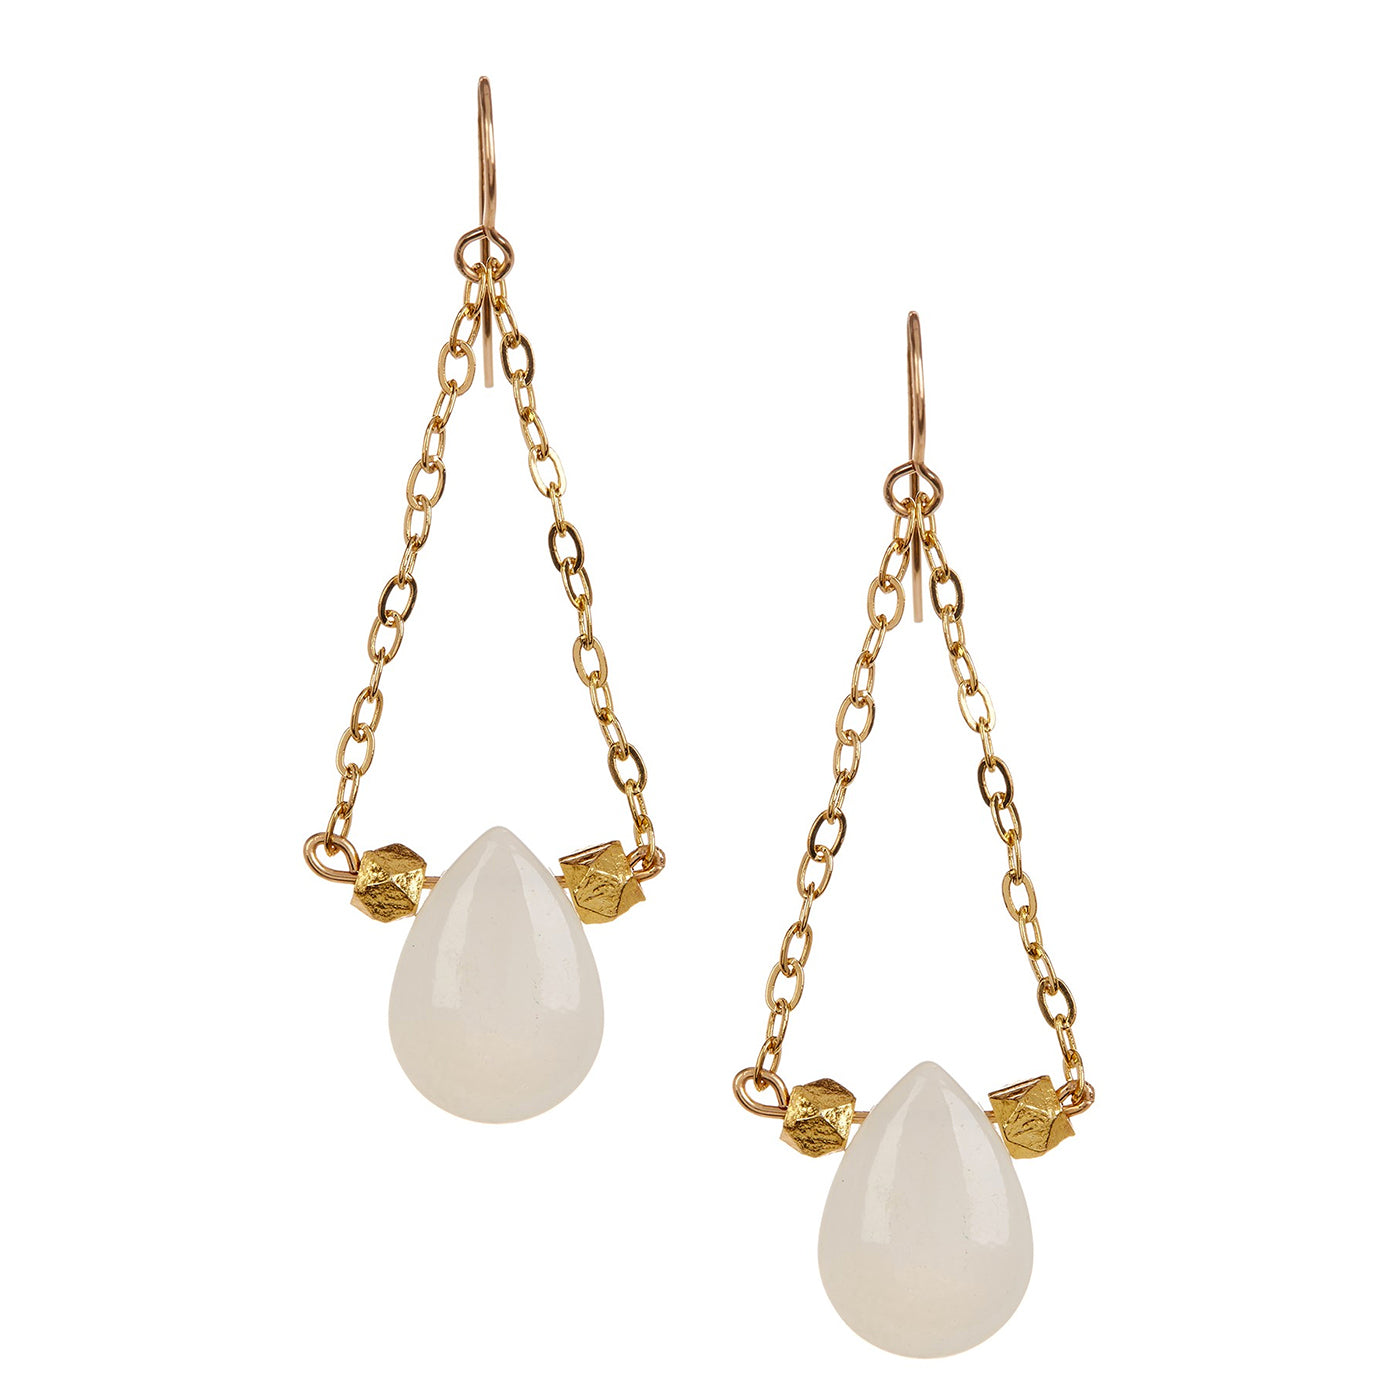 White Agate Chandelier Earrings